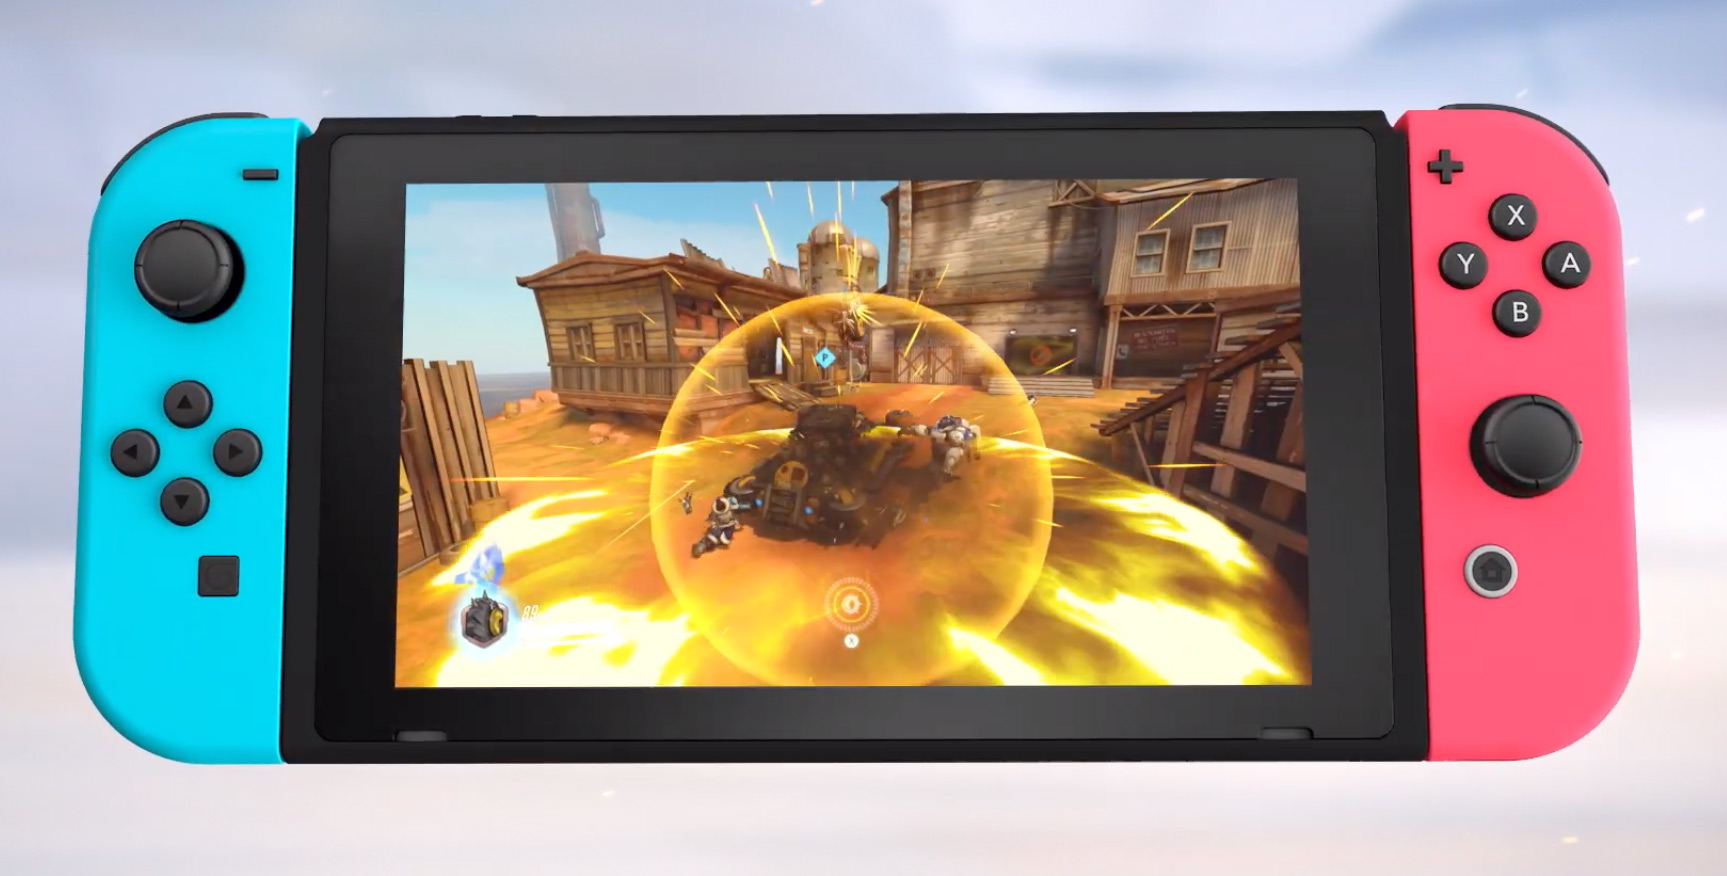 Image 1 : Overwatch limité à 30 ips sur Nintendo Switch !